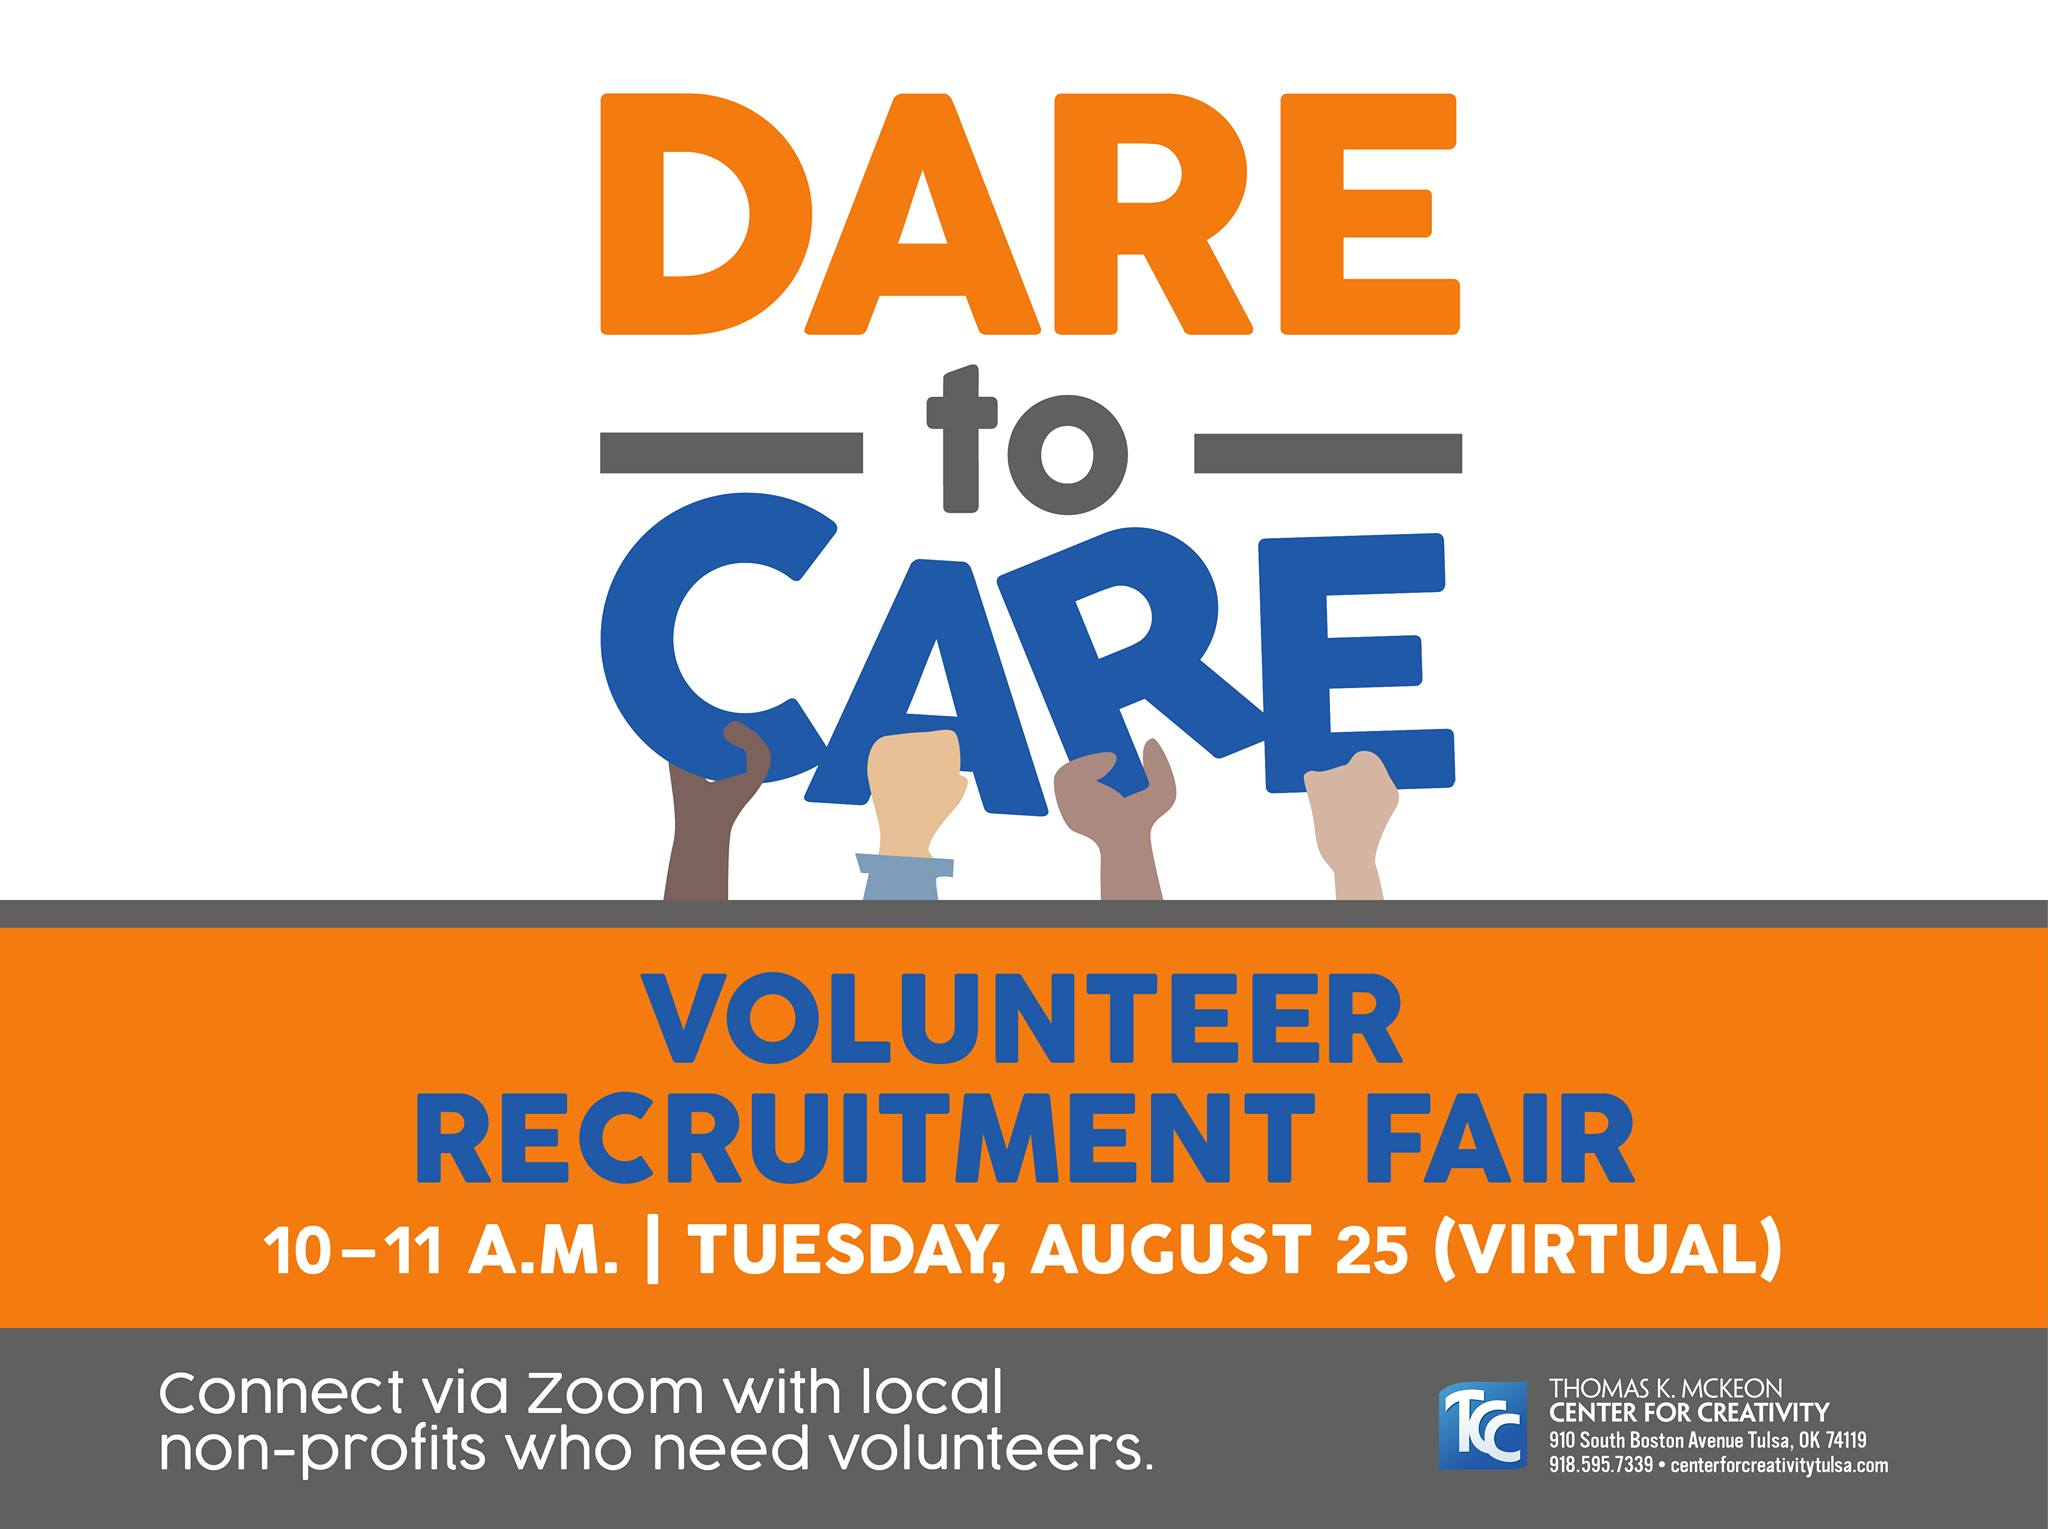 Dare to Care Volunteer Recruitment Fair